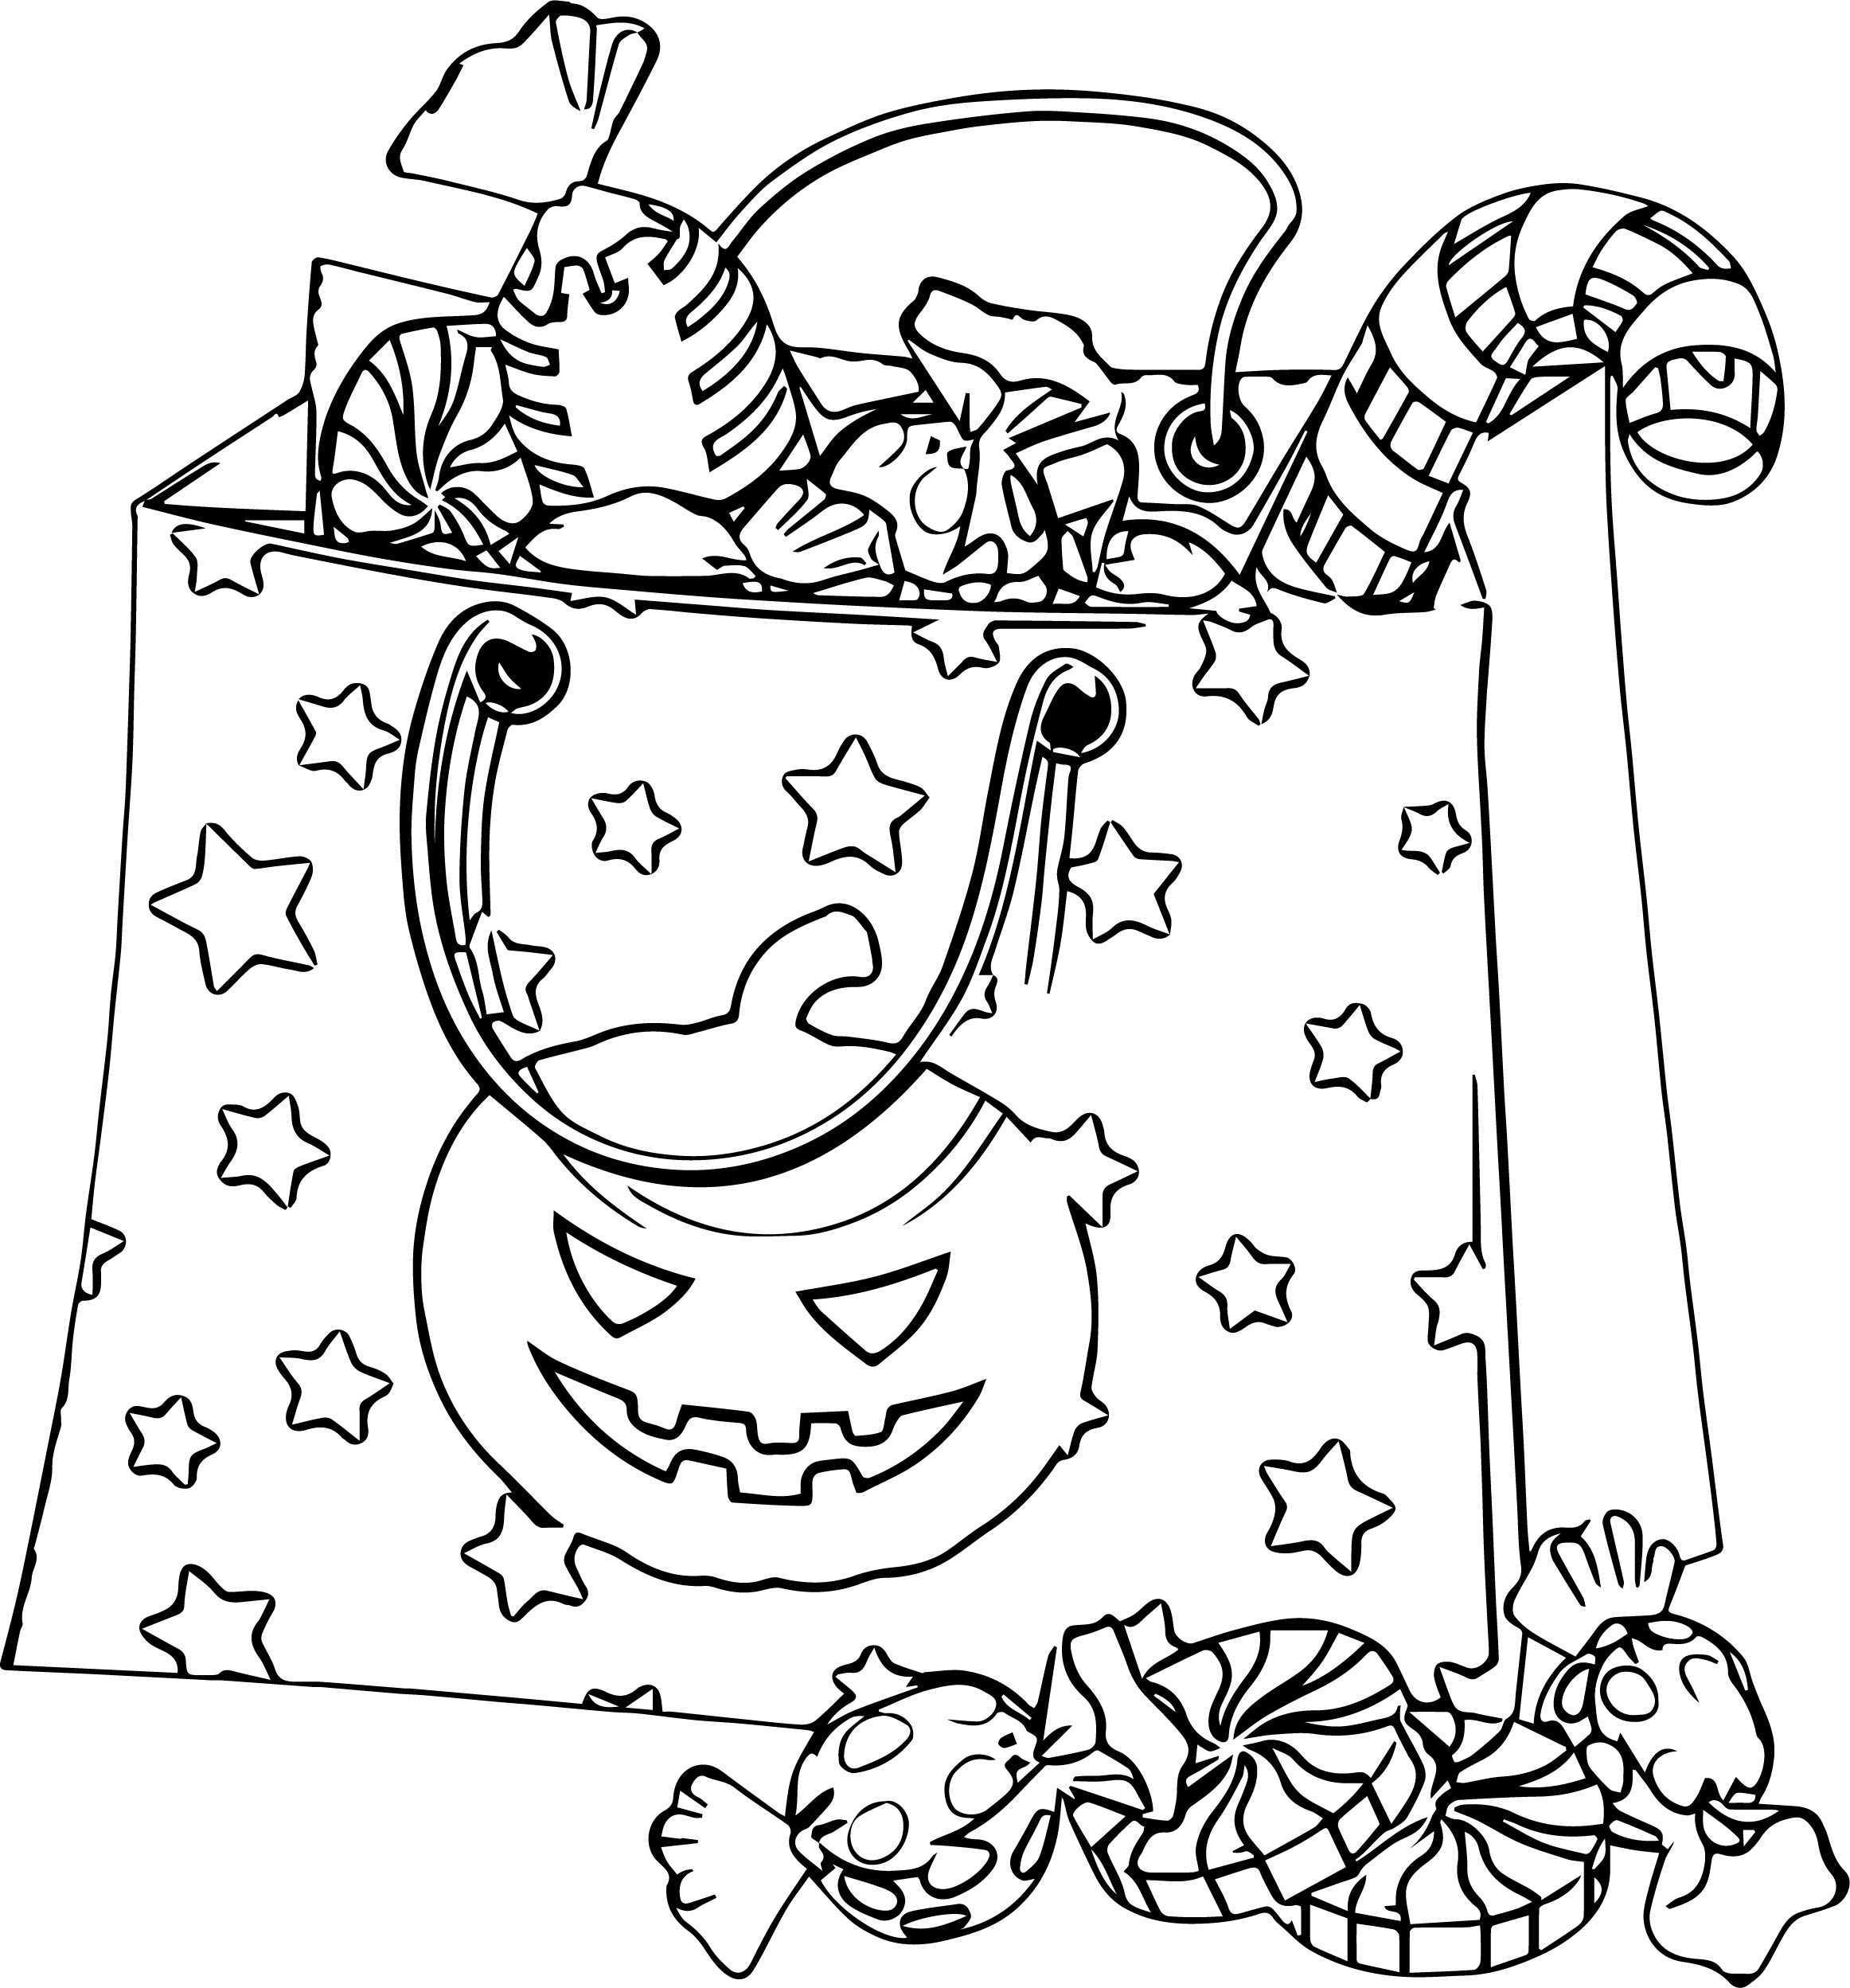 Bag Halloween Coloring Page